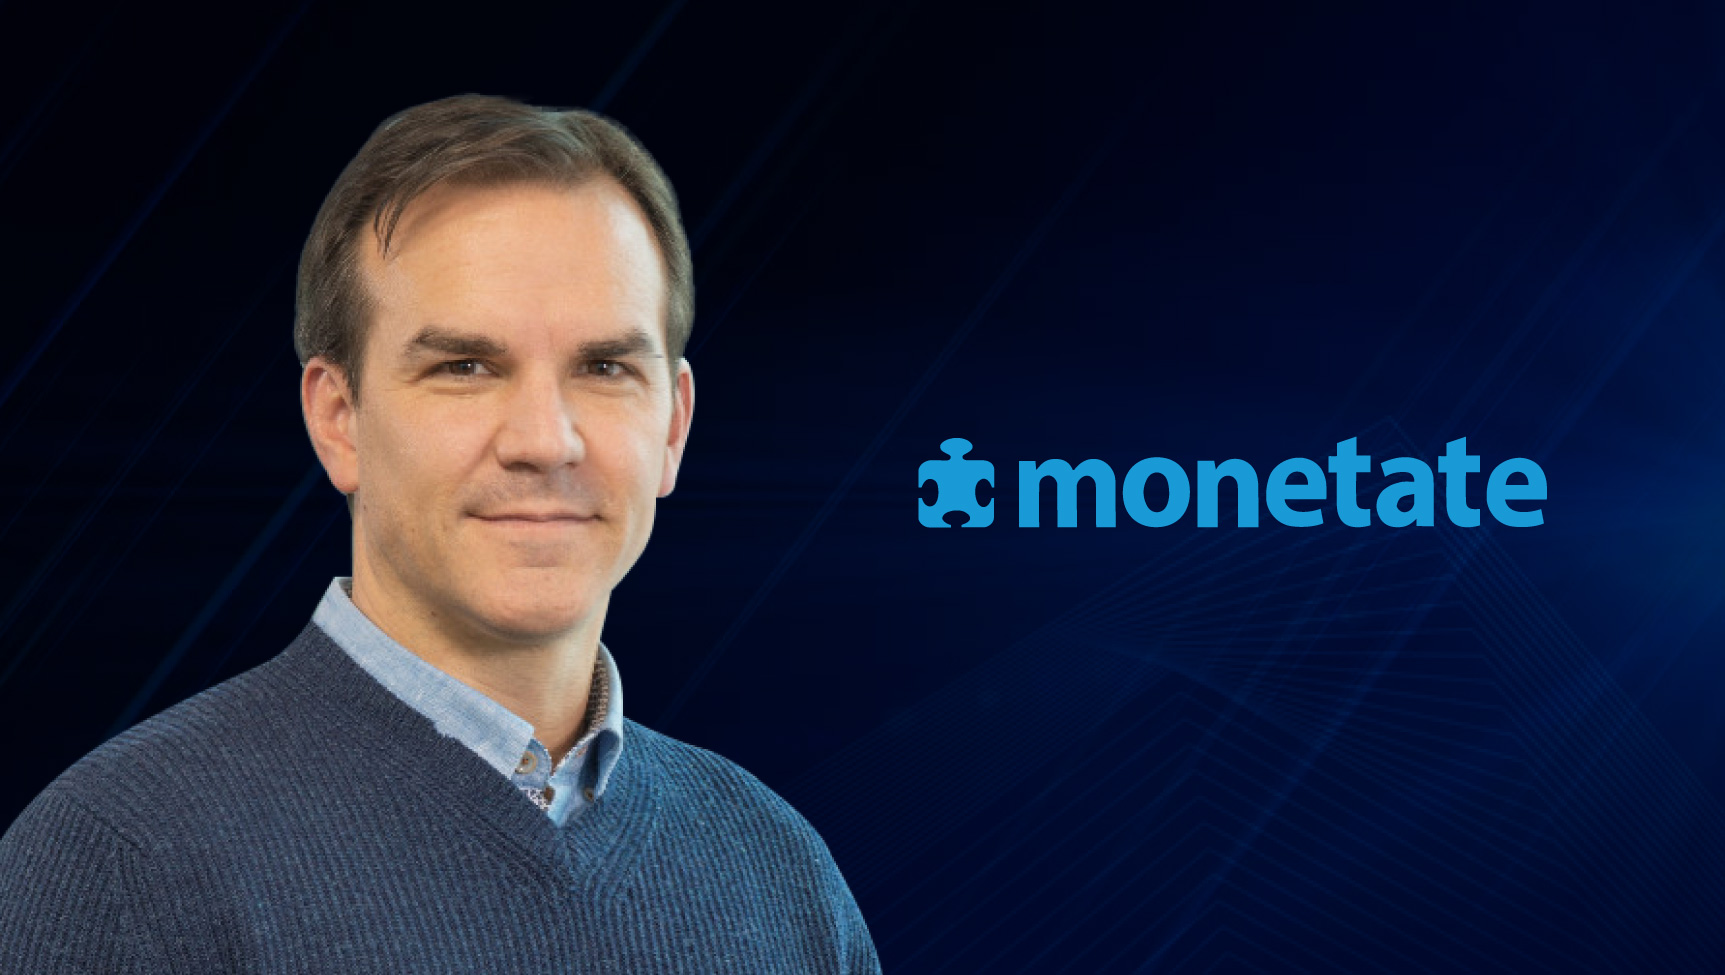 SalesTech Interview With Brandon Atkinson, Chief Operating Officer at Monetate